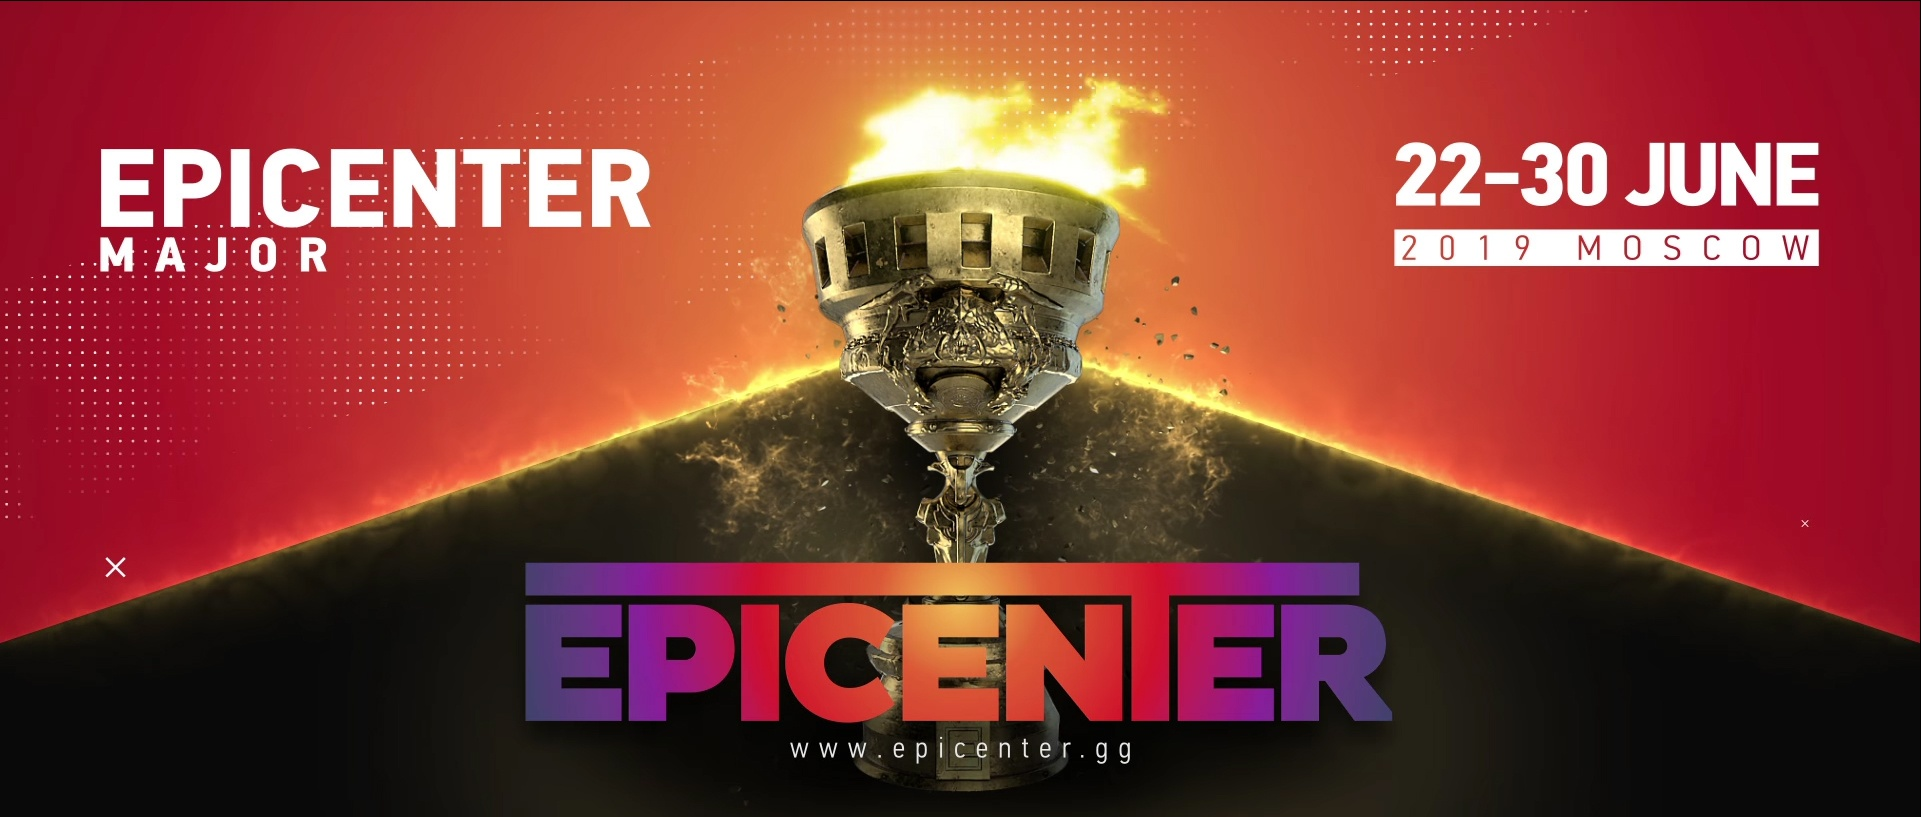 EPICENTER Major